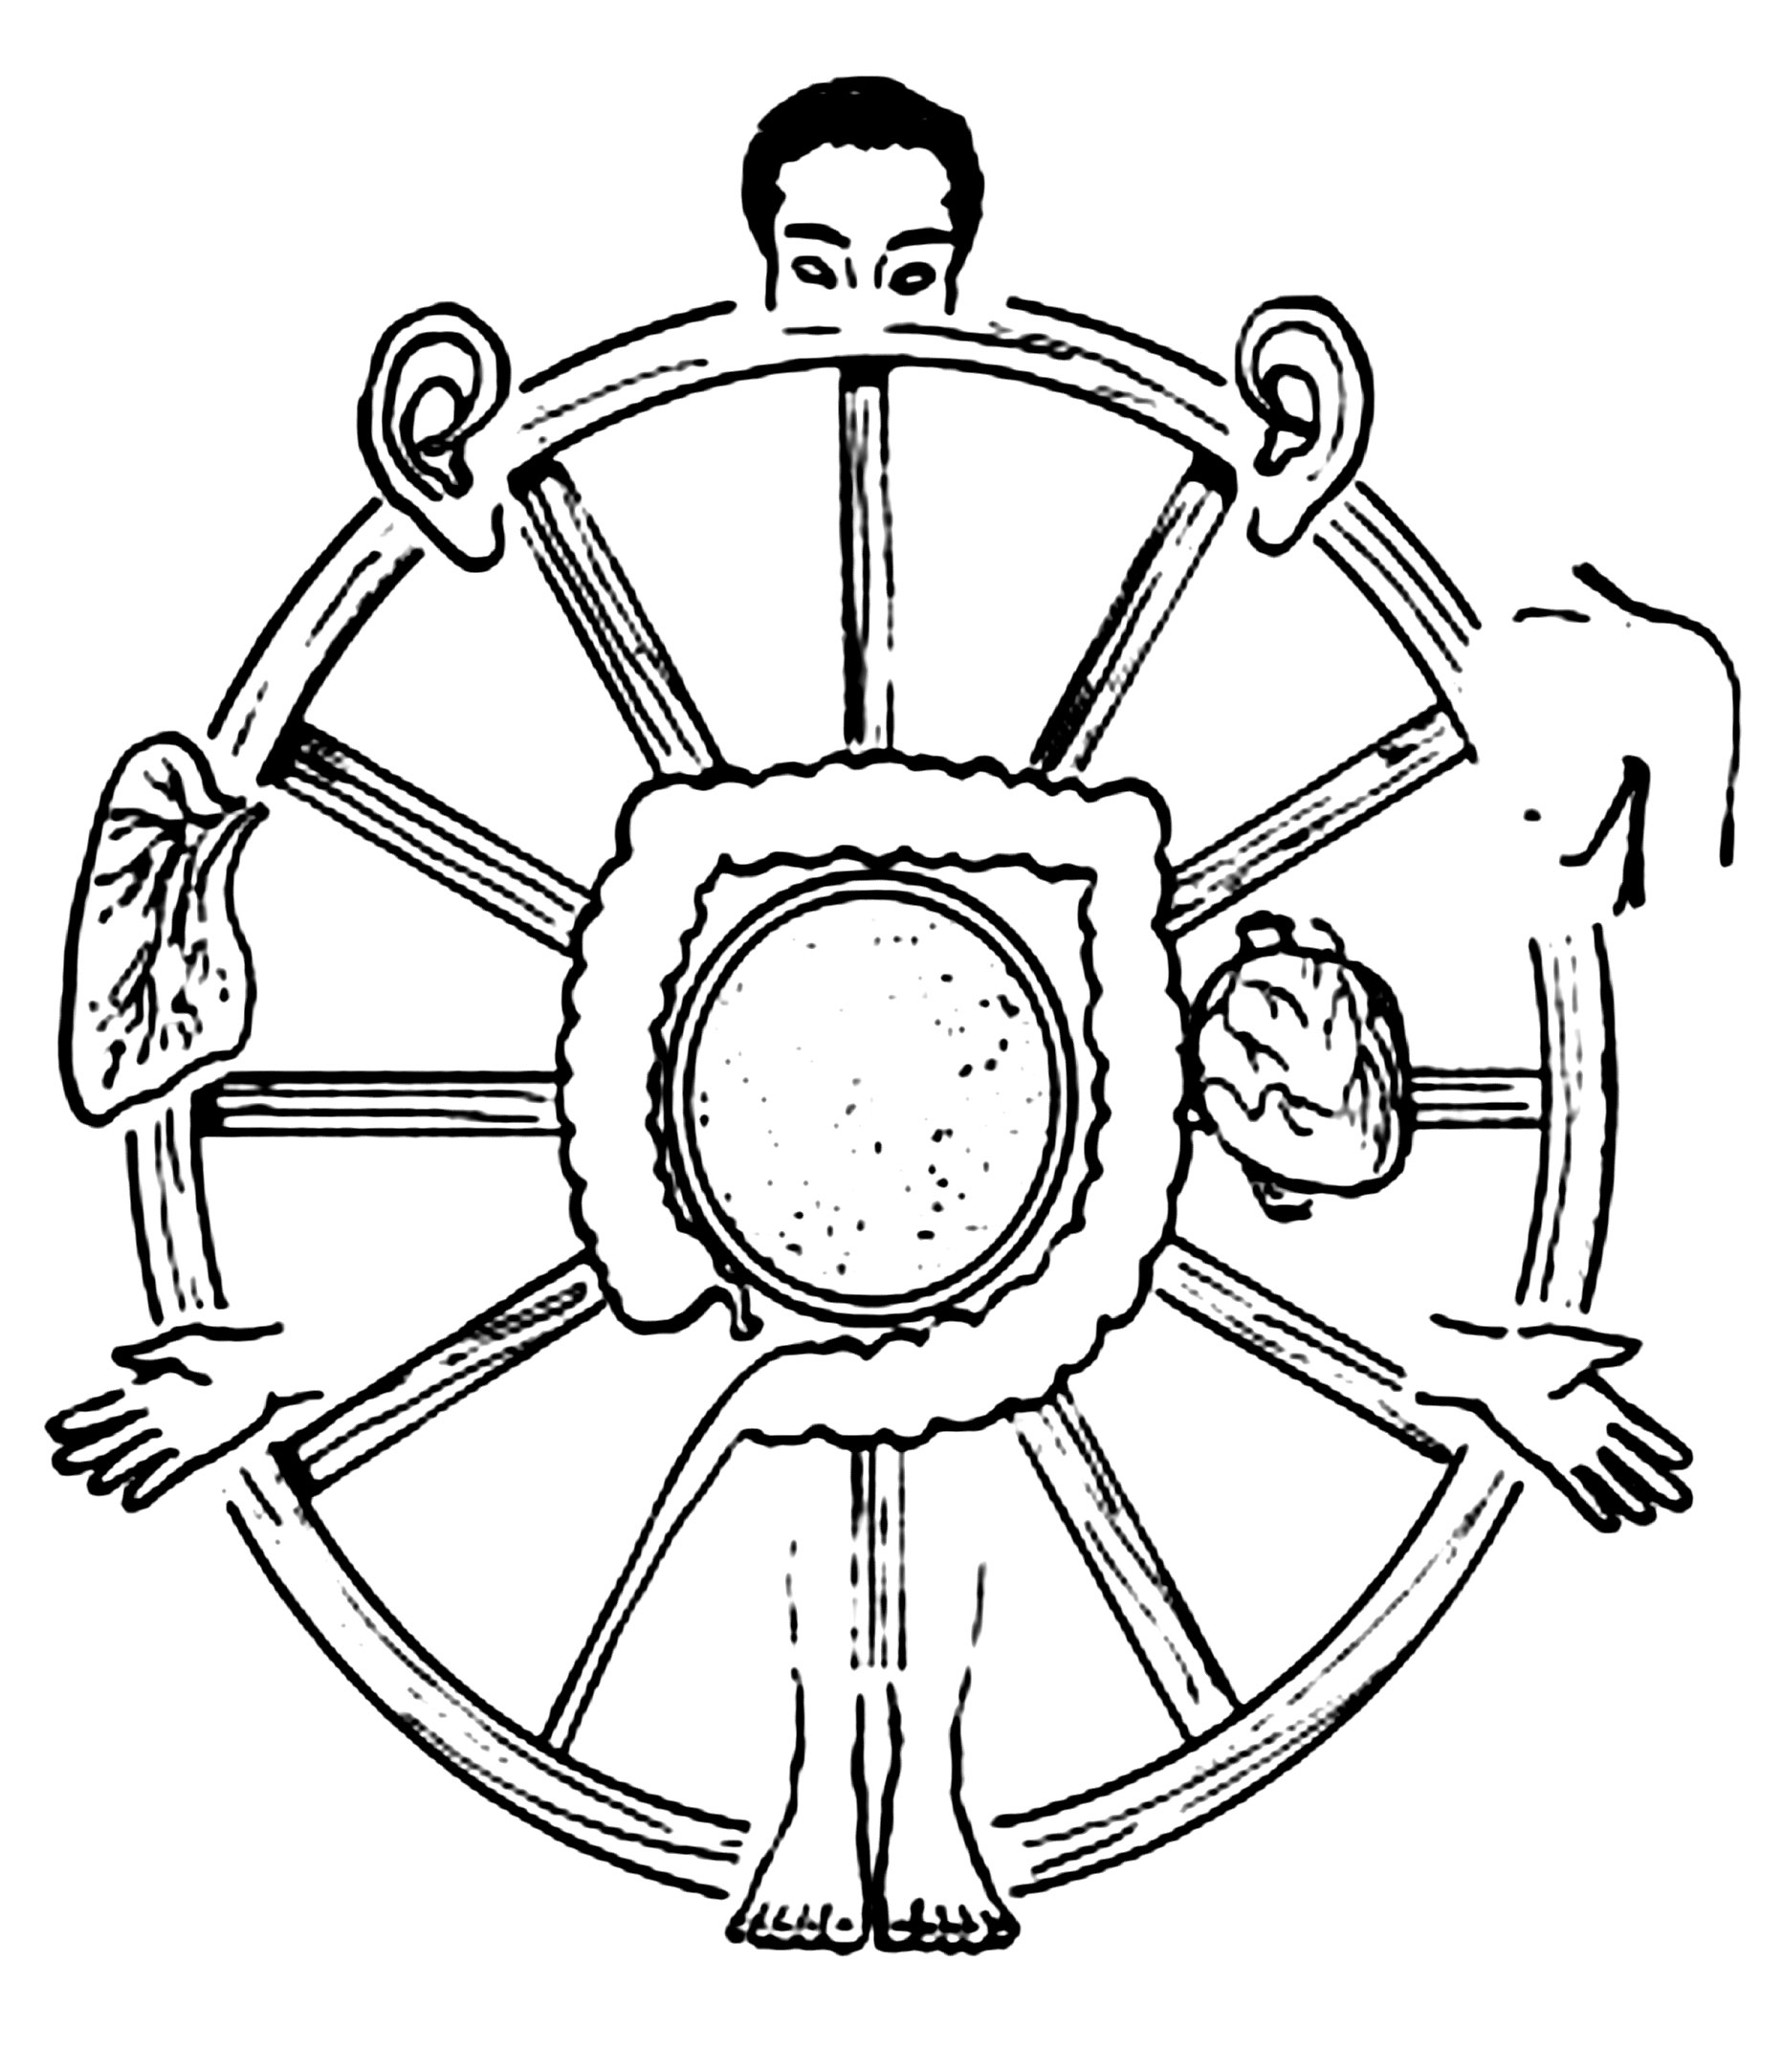 Iridology Wheel of the Eye